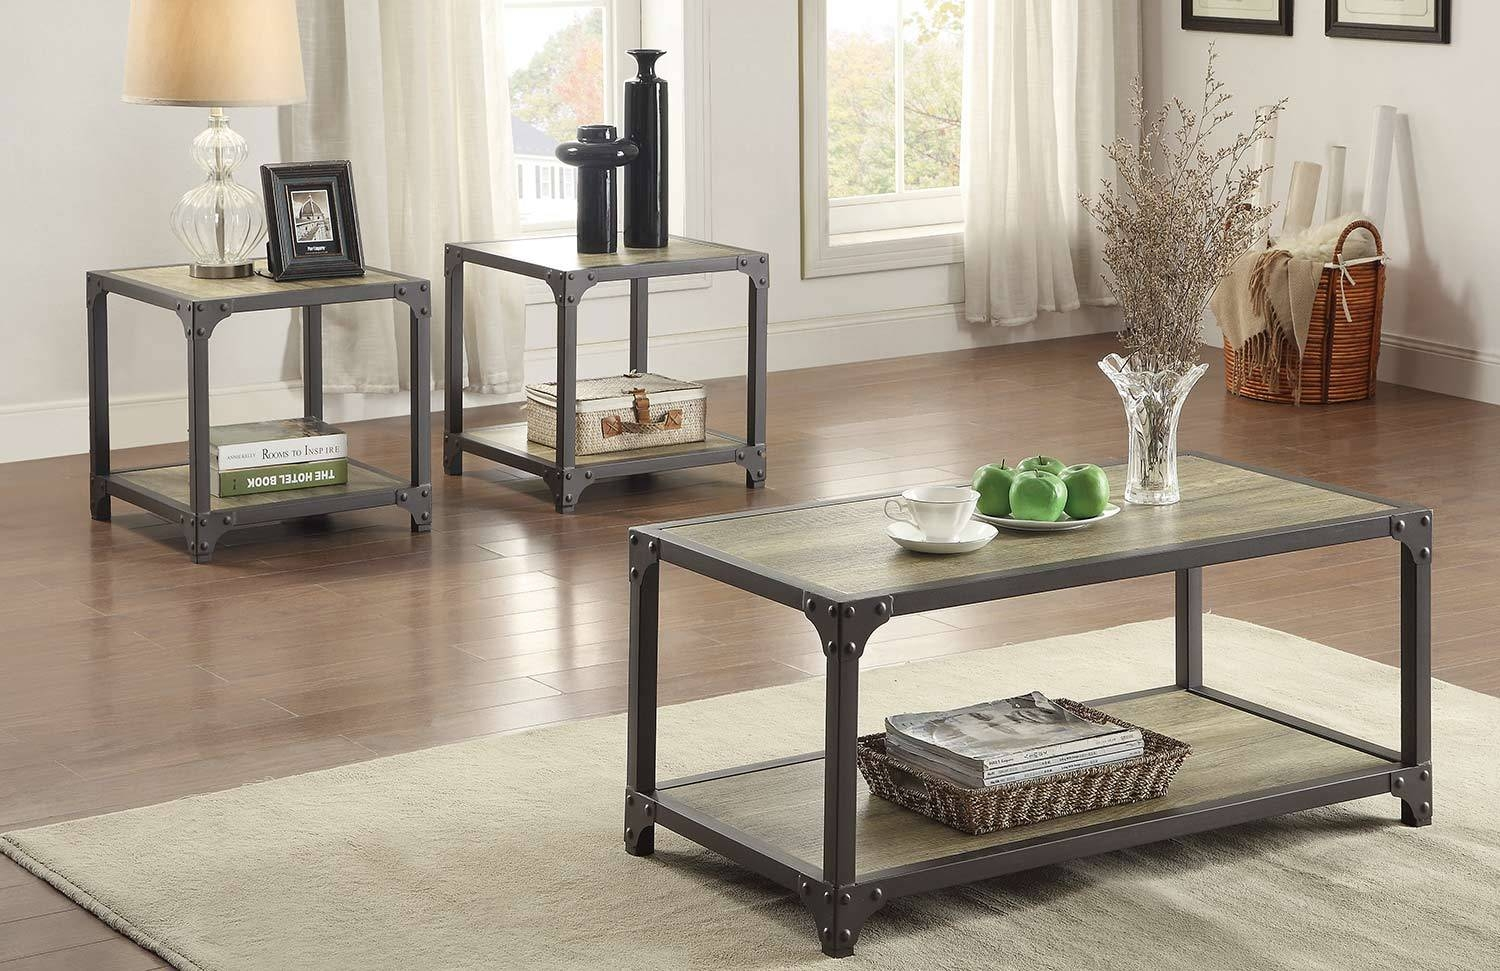 Homelegance Rumi Coffee Table Set - Light Burnished Wood With in Tv Stand Coffee Table Sets (Image 18 of 30)